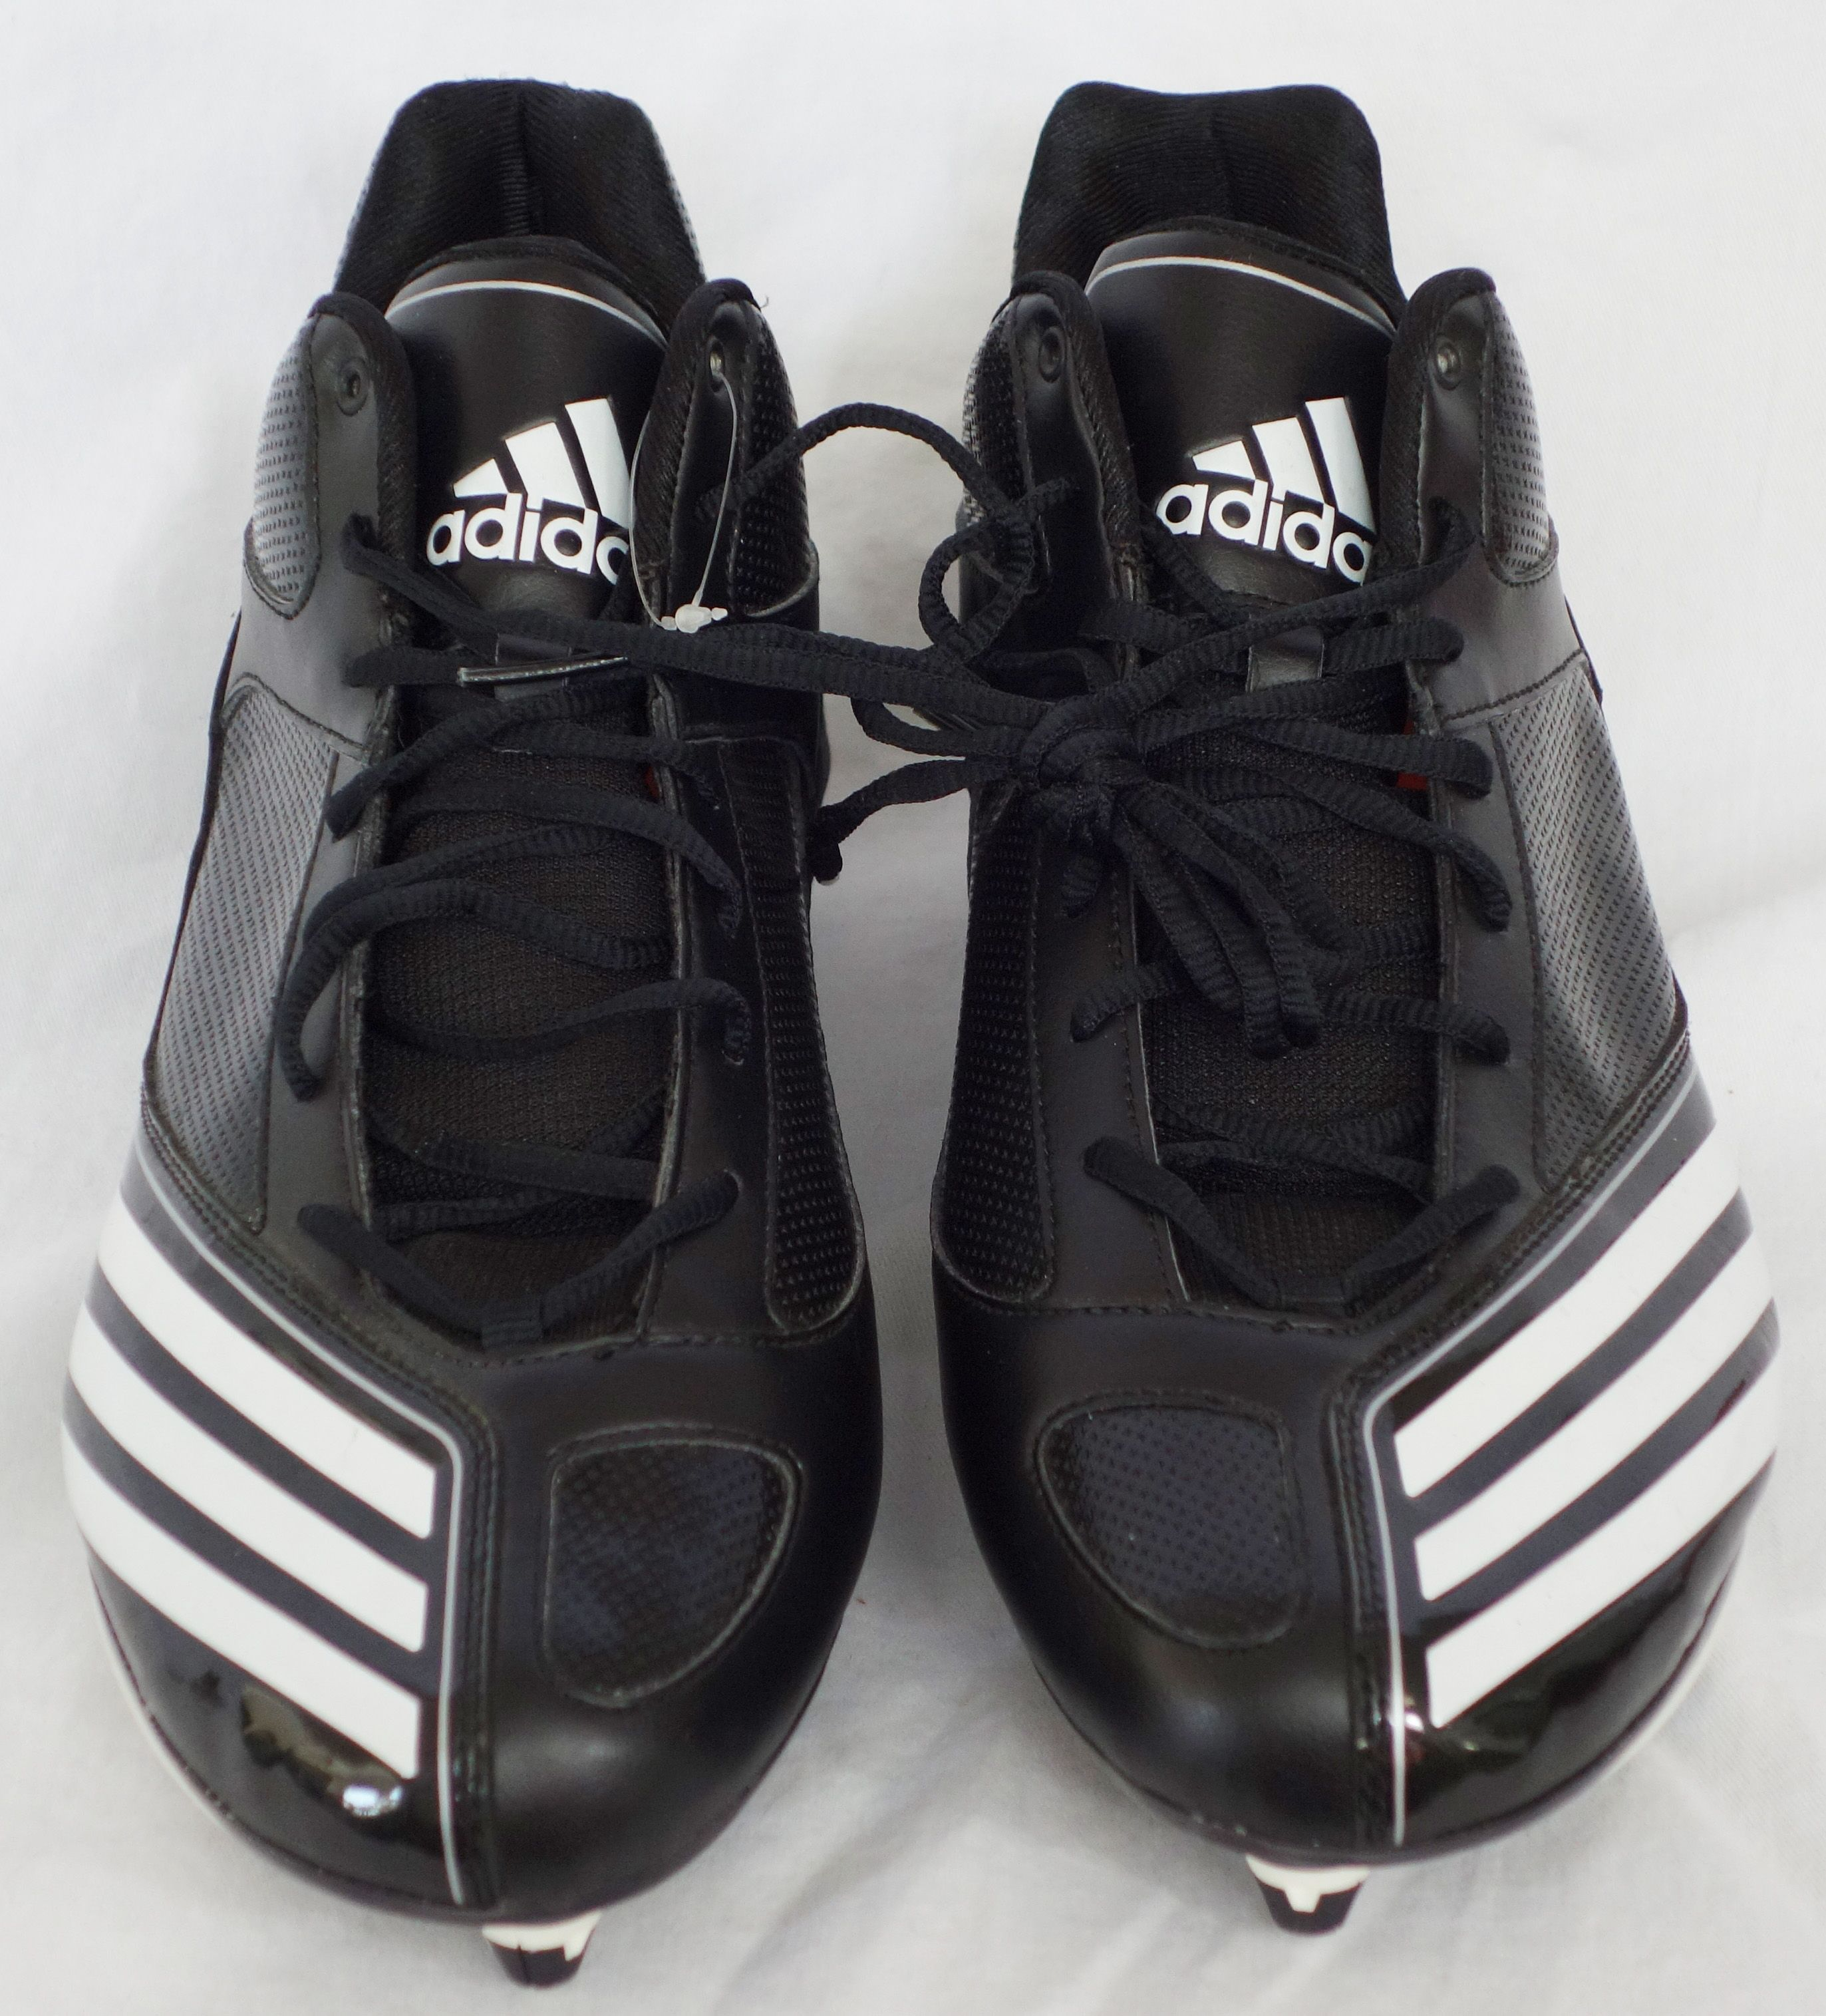 Adidas scorch thrill d low football soccer cleats black